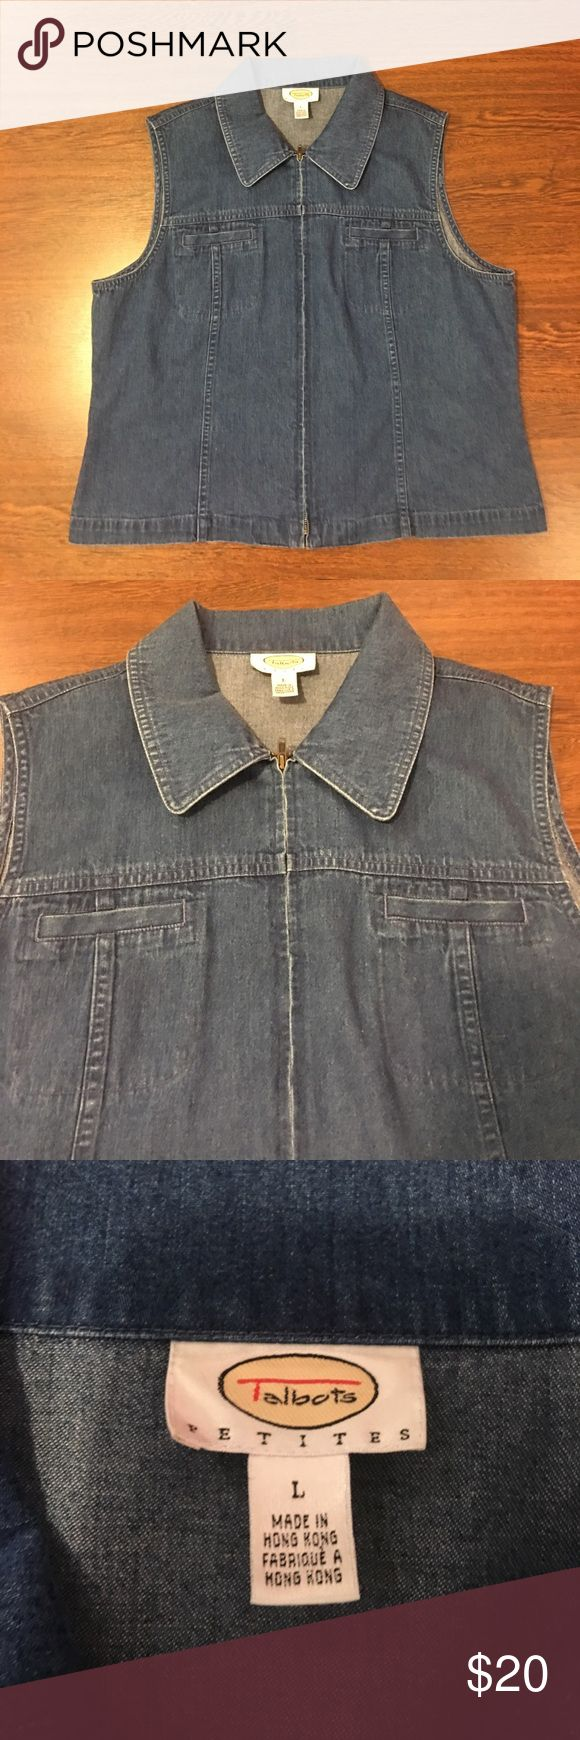 Talbots Blue Jean Sleeveless Zip Up Vest Jacket Talbots Blue Jean Denim Sleeveless Zip Up Vest Jacket. 100% Cotton. Women's Size Large. Lightly Worn. In Great Pre Owned Condition. Talbots Tops